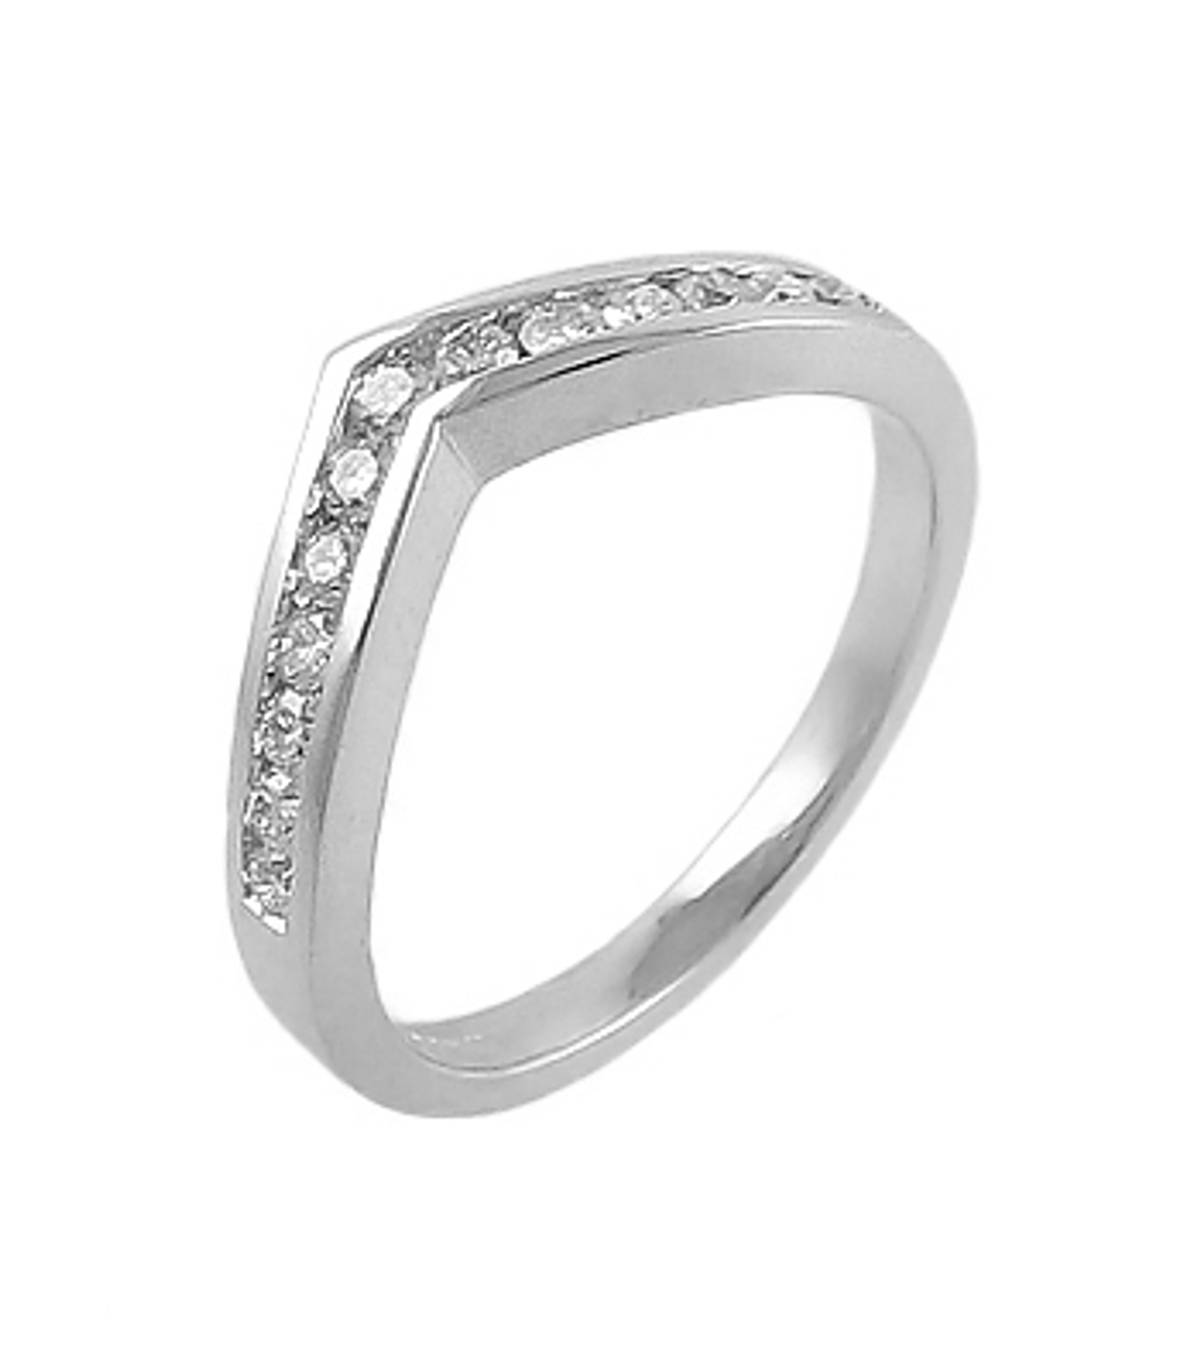 18k white gold brilliant cut 13st diamond channel set wishbone ring Carat: total diamond weight 0.35cts Metal: 18k white gold